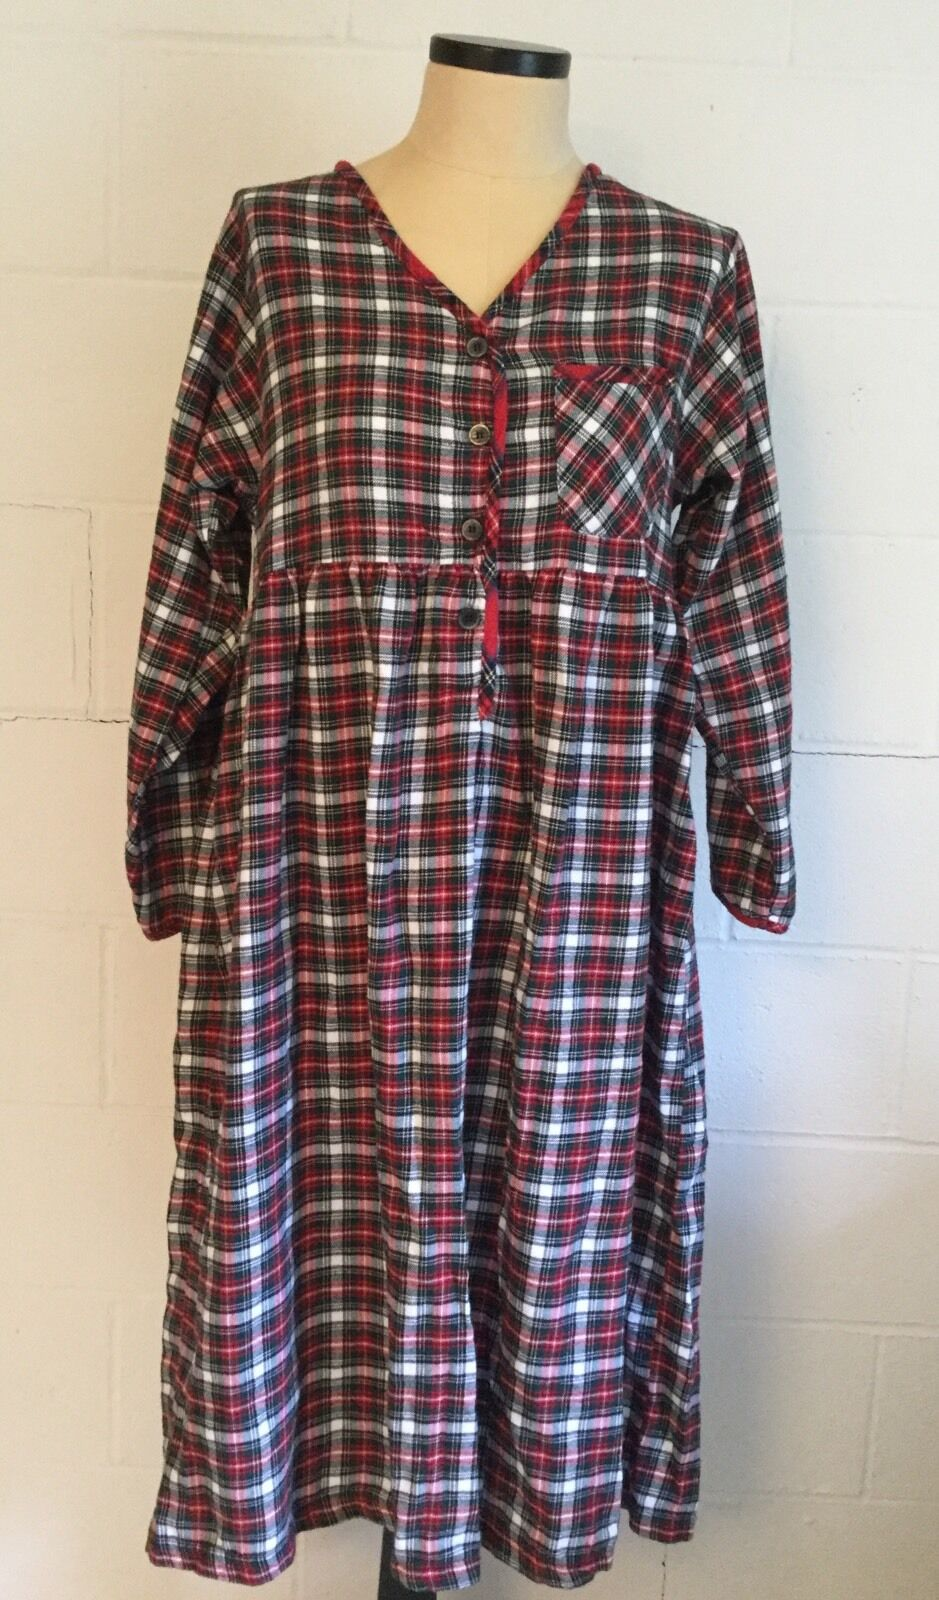 Charter Club Flannel Nightgown Medium Red Plaid Long Sleeve 100% Cotton